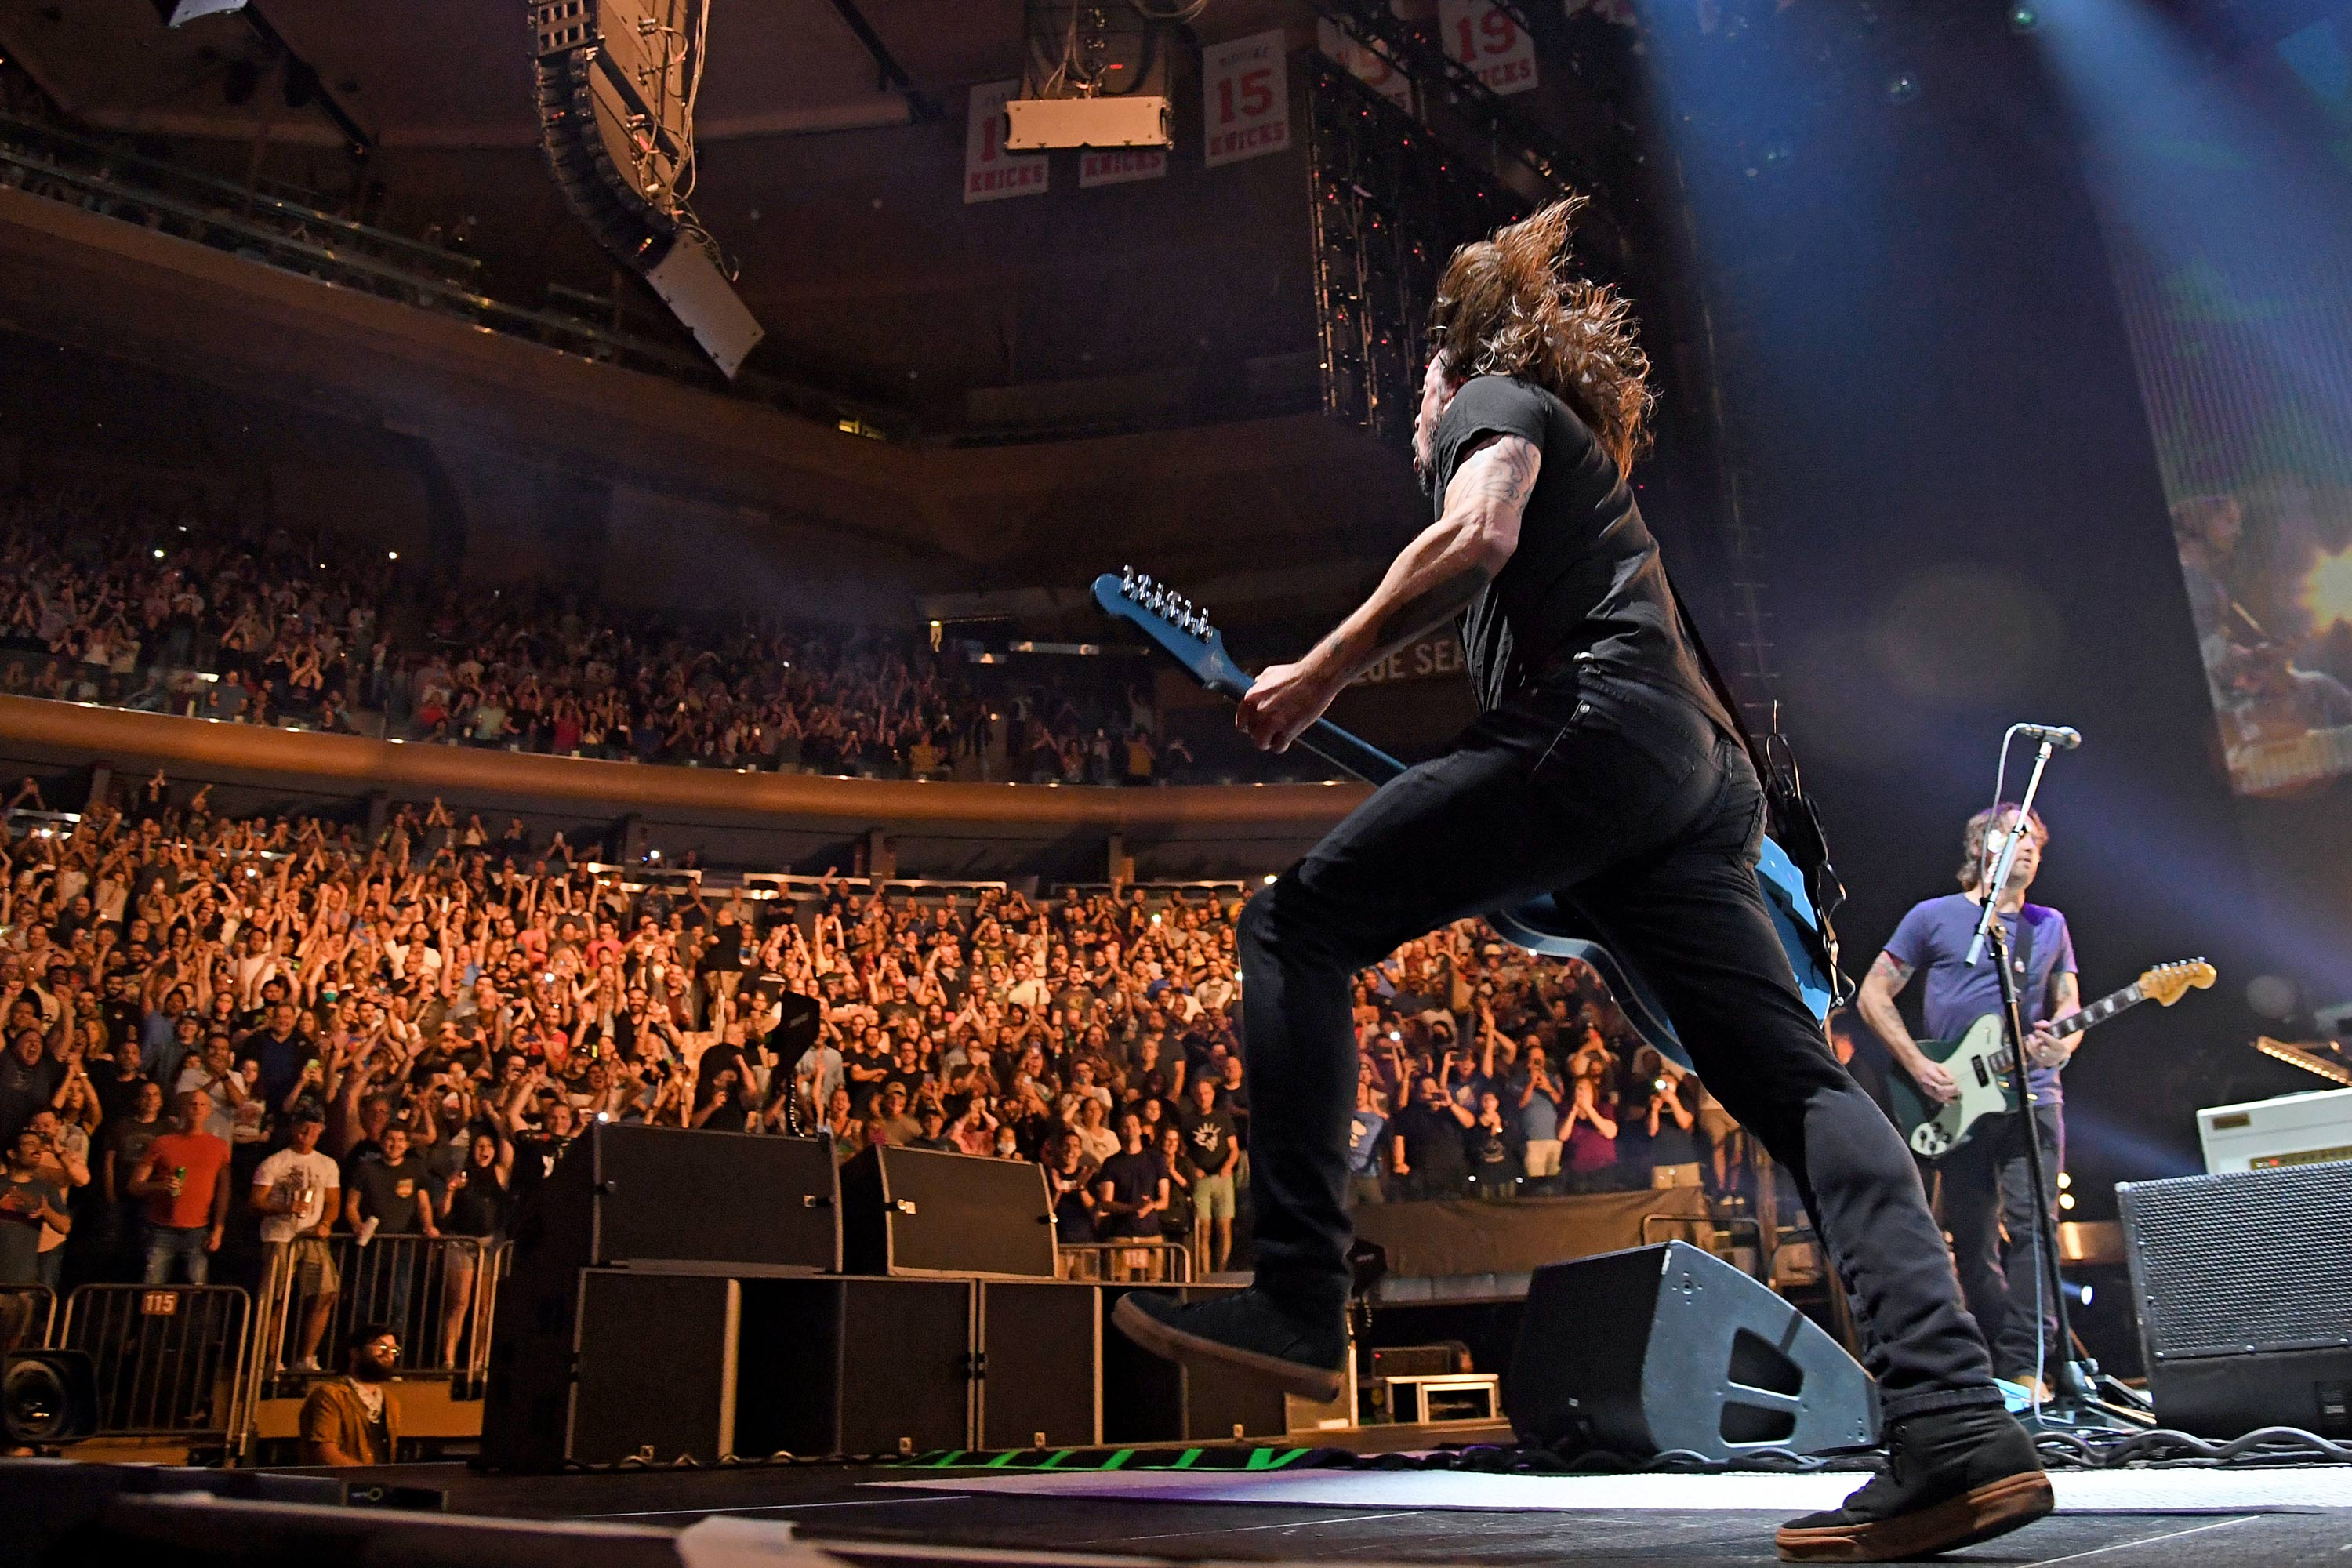 Dave Grohl performs onstage as The Foo Fighters reopen Madison Square Garden on June 20 in New York City.